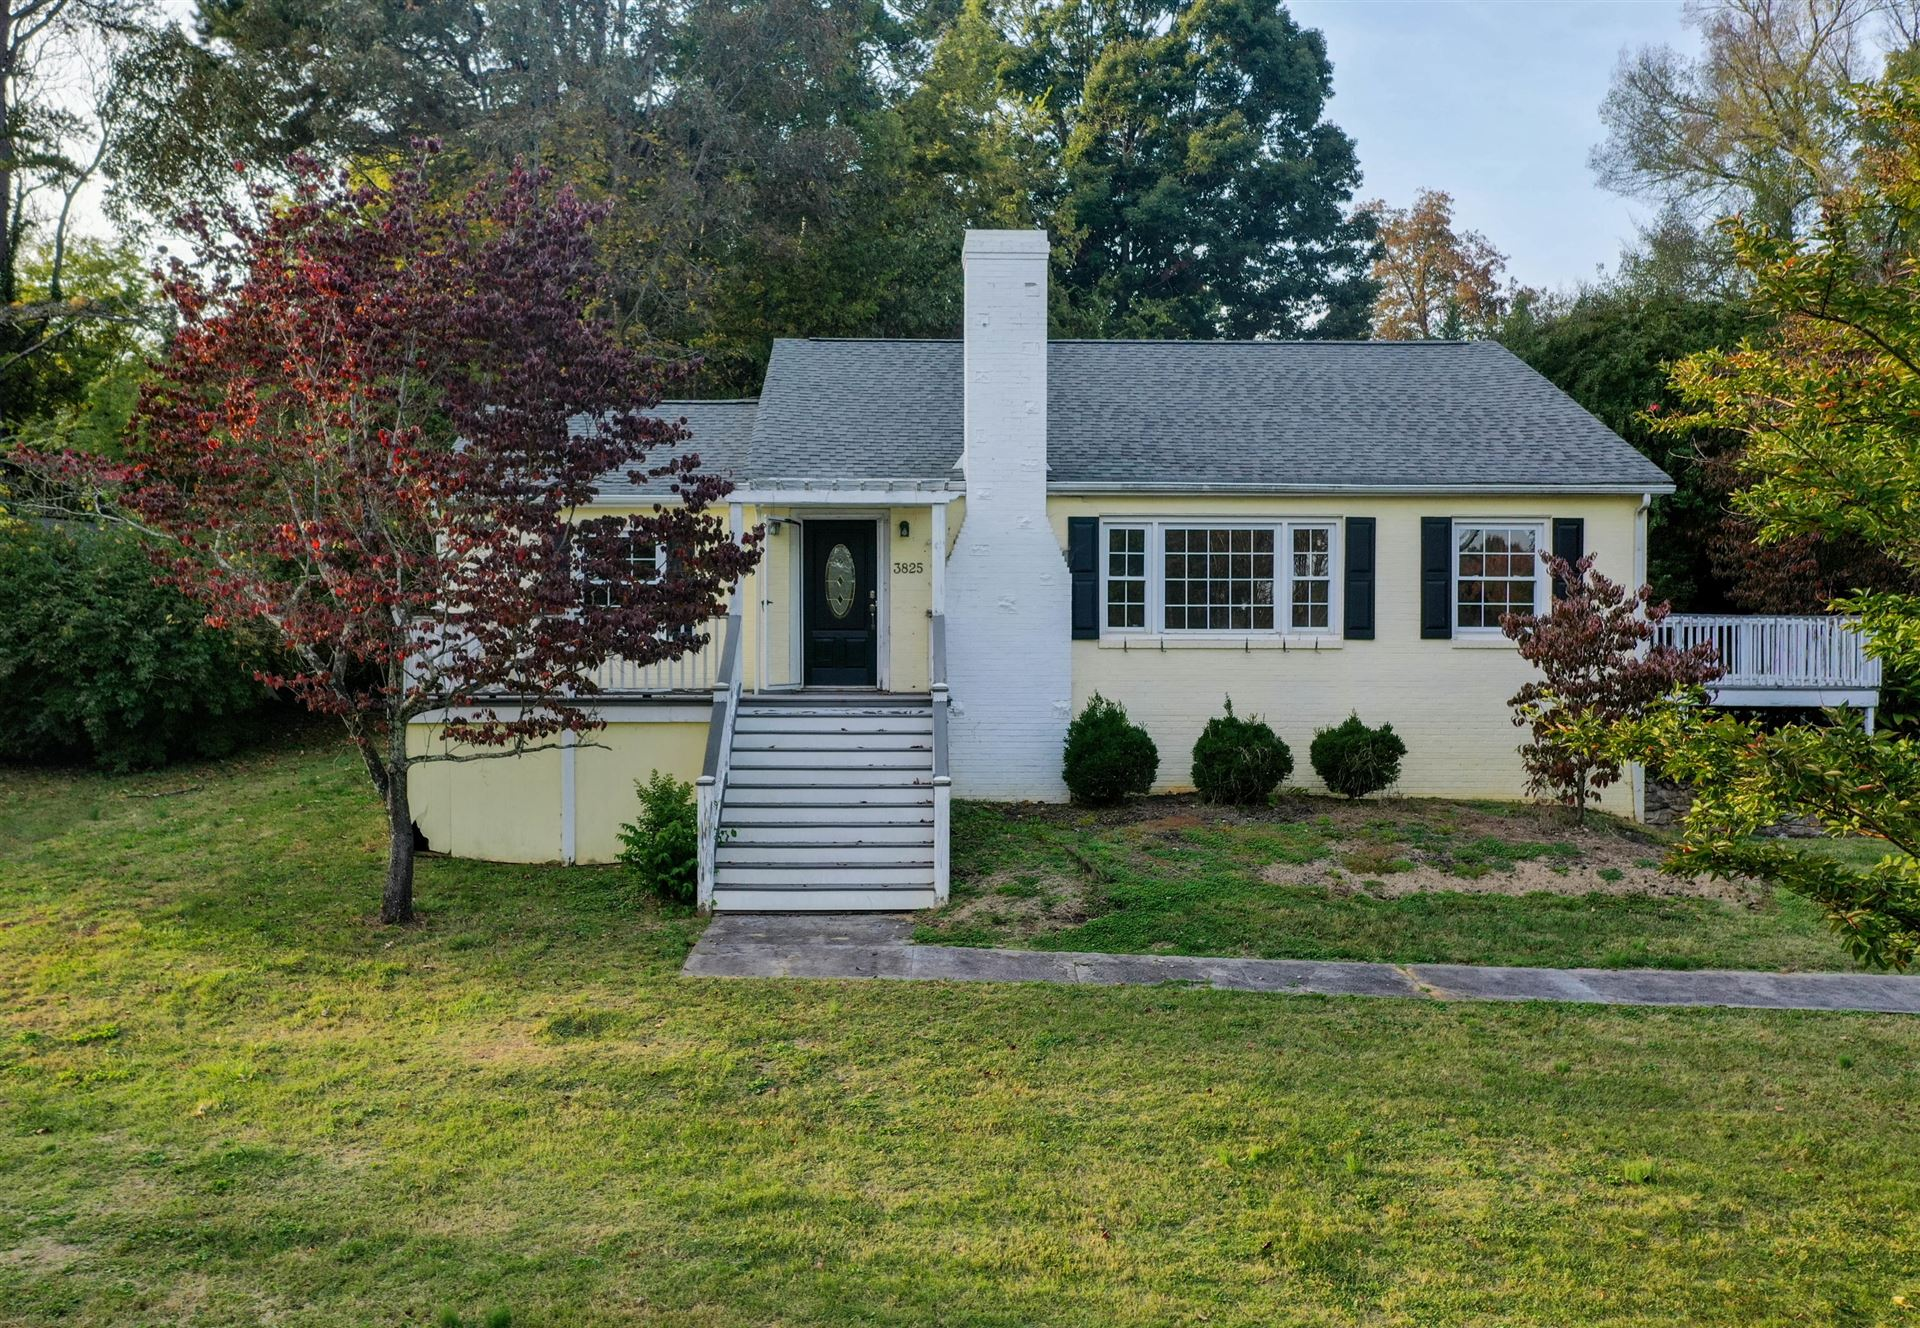 Photo of 3825 Terrace View Drive, Knoxville, TN 37918 (MLS # 1133455)